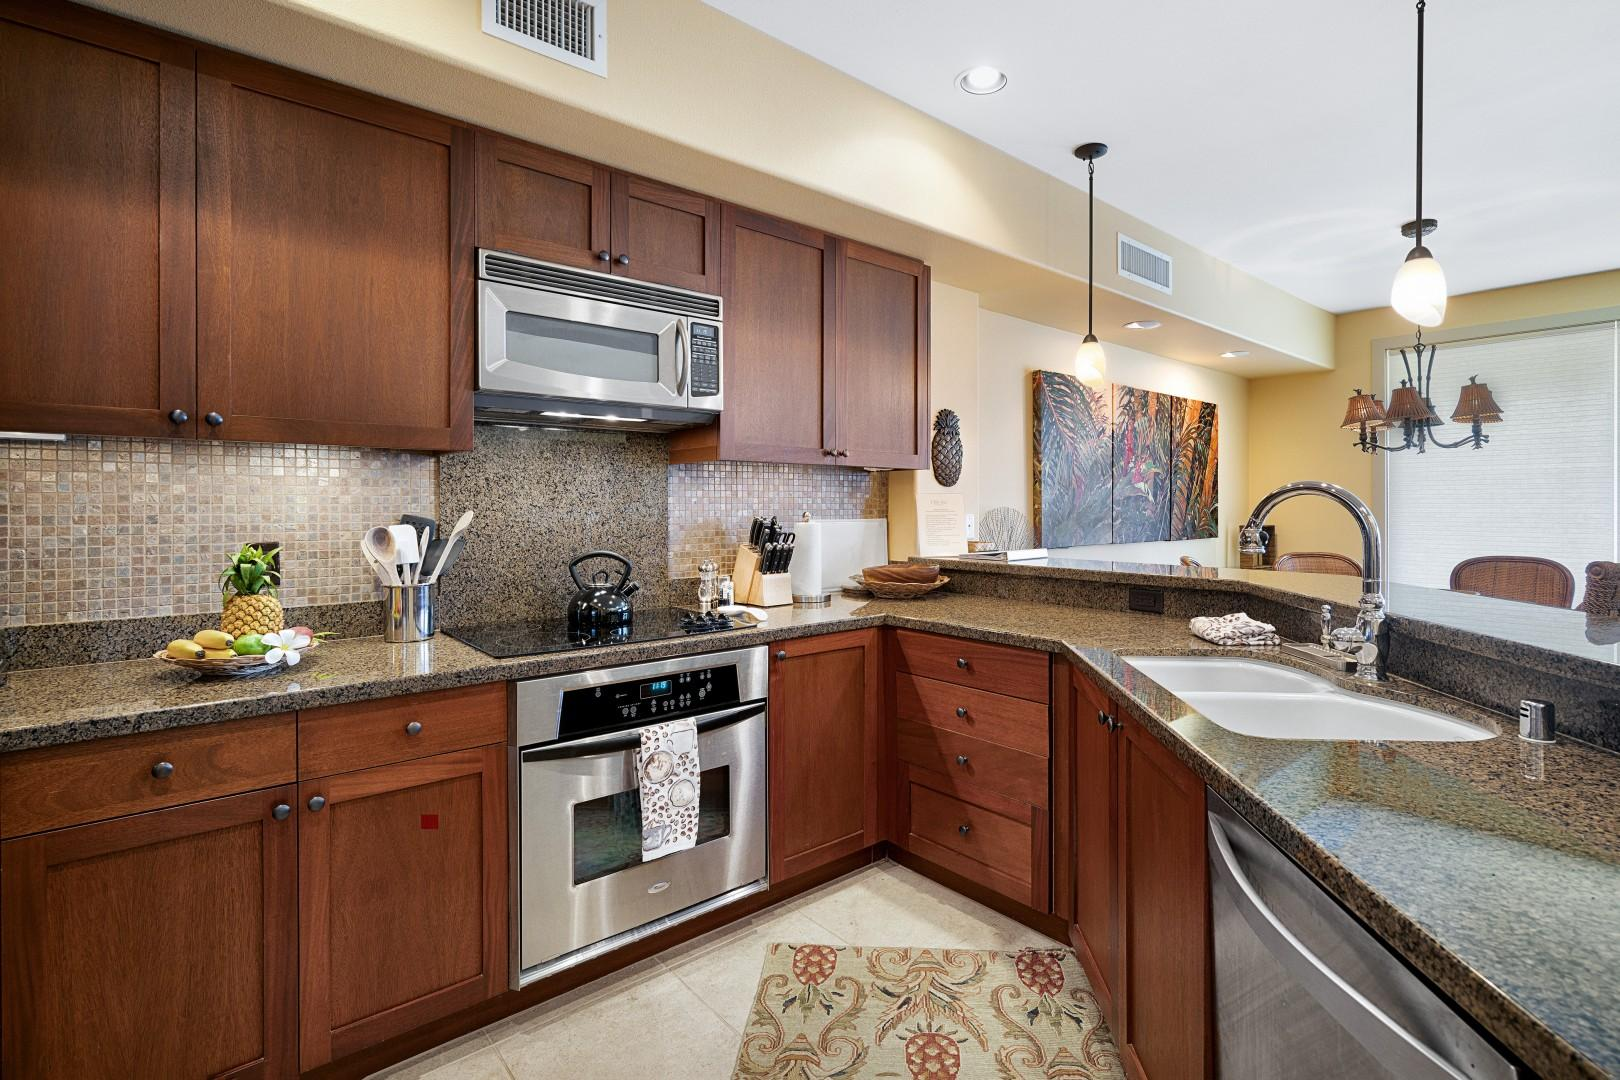 High end kitchen with all the tools you'll need!